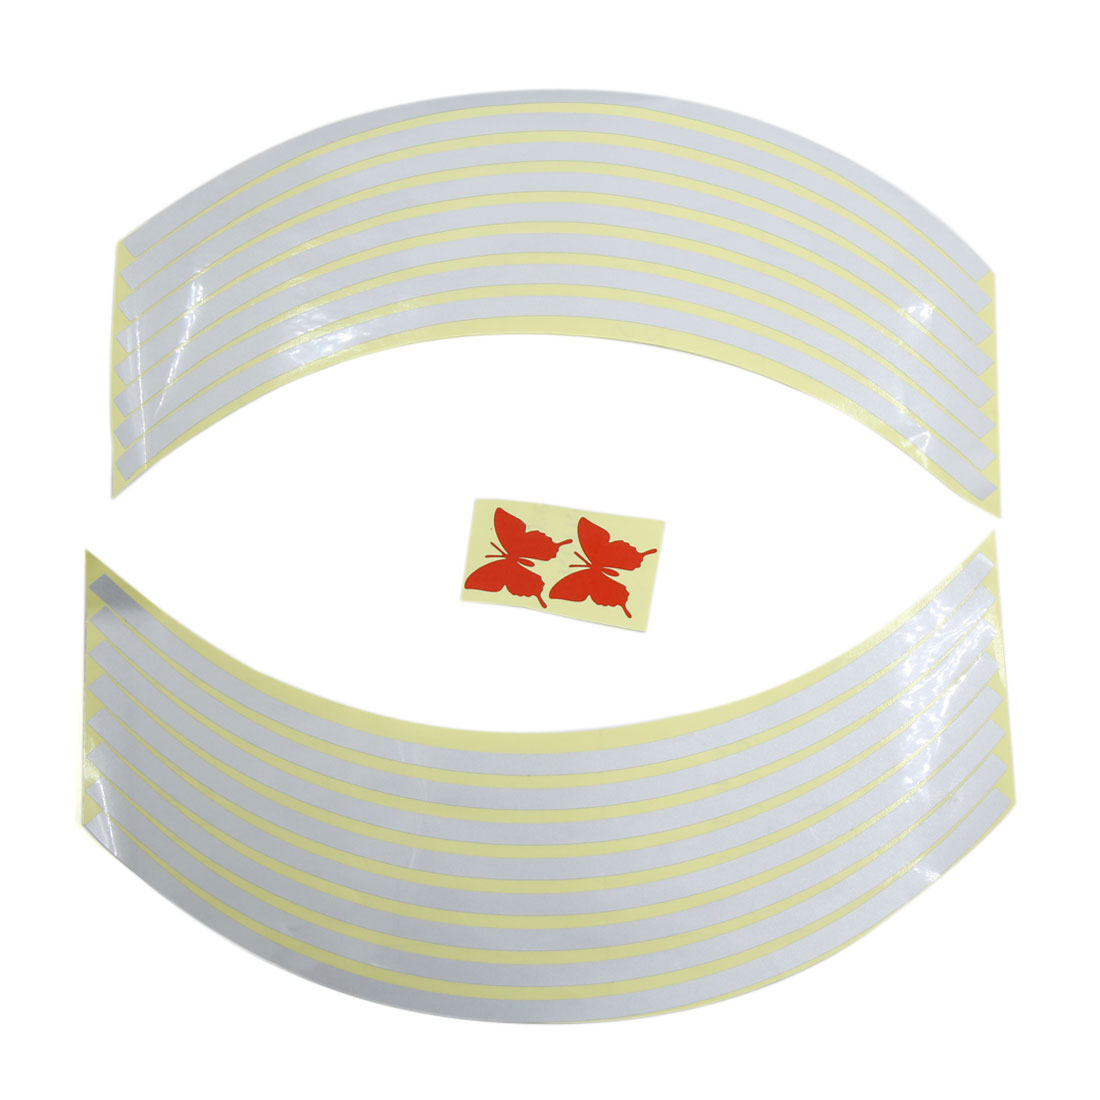 4pcs White Plastic Sticker Decal Decorative Adhesive Accessories for Car Vehicle